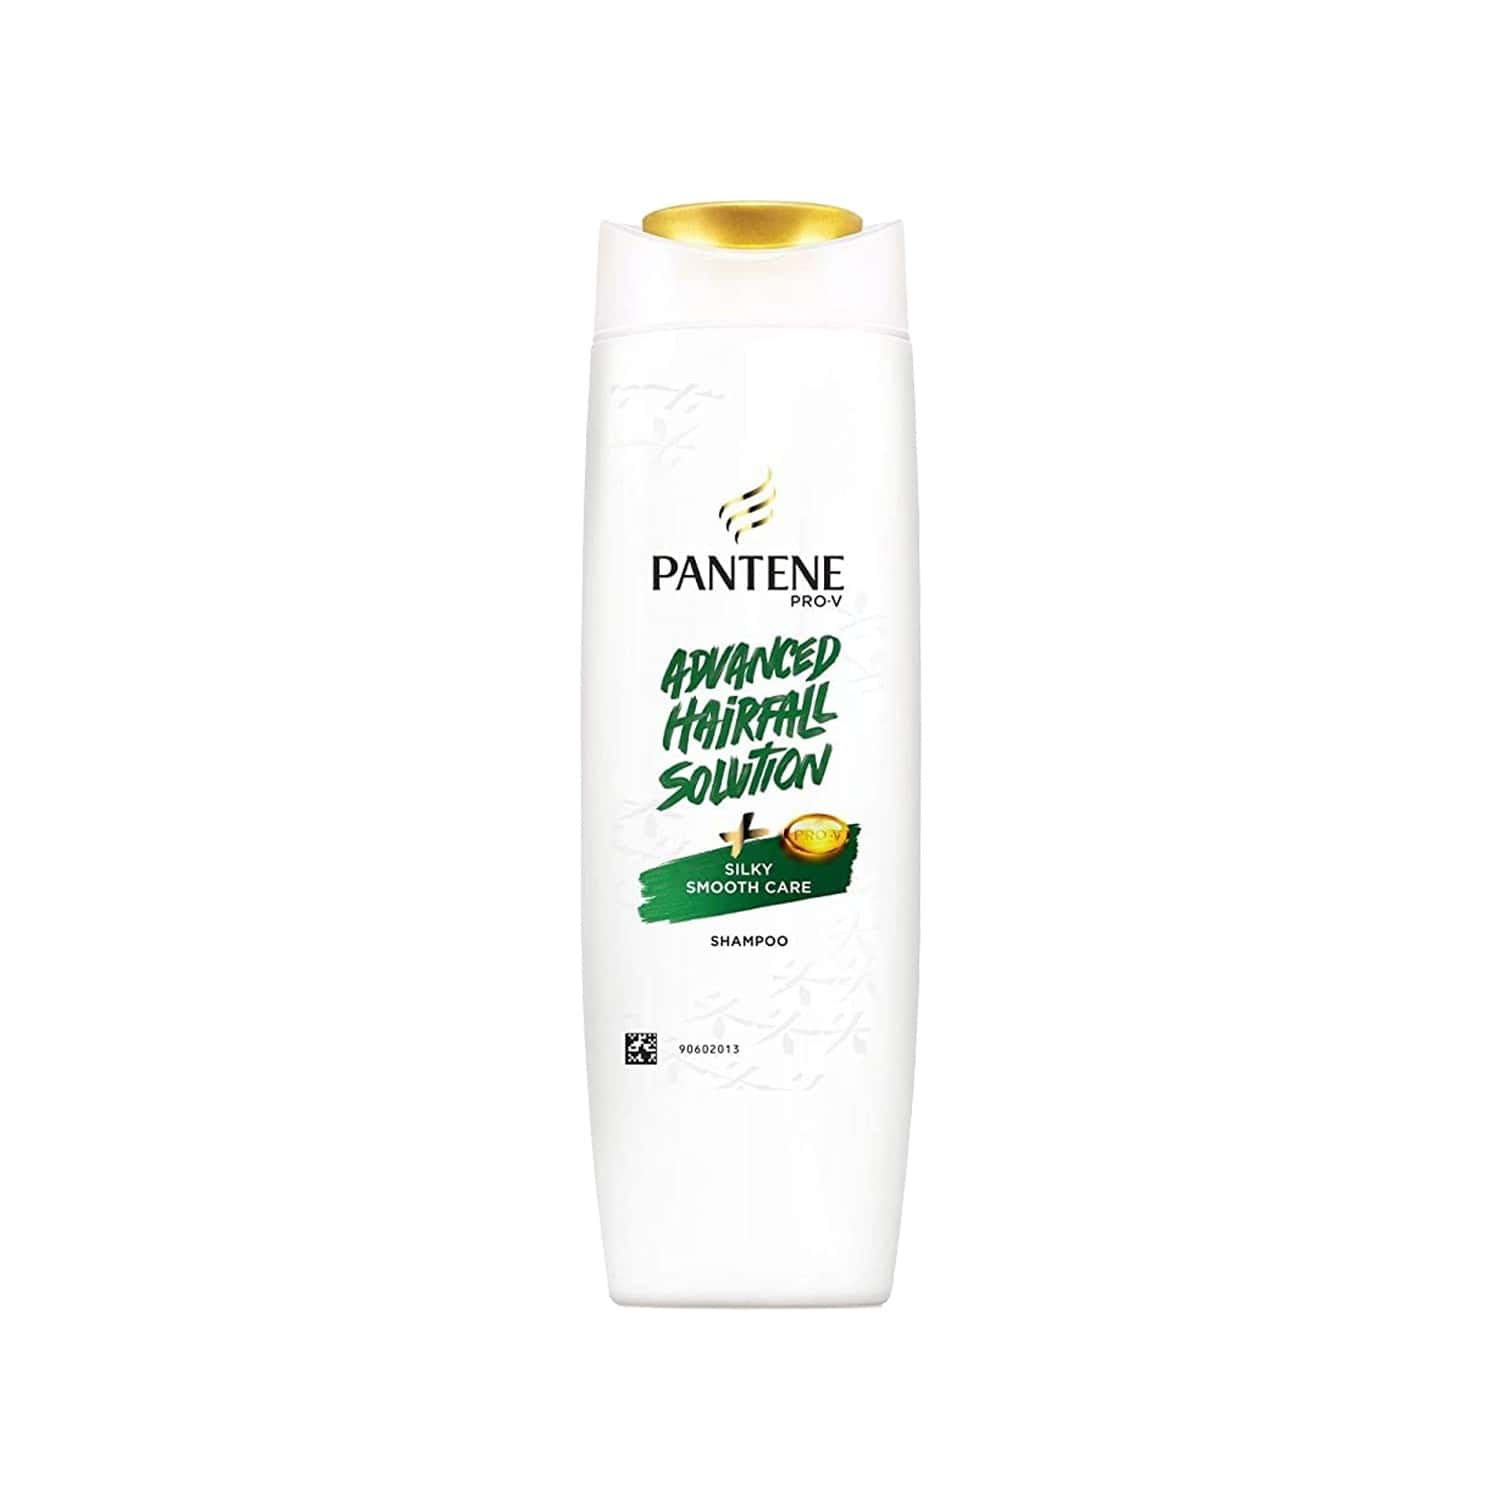 Pantene Advanced Hair Fall Solution Silky Smooth Care Shampoo - 180ml